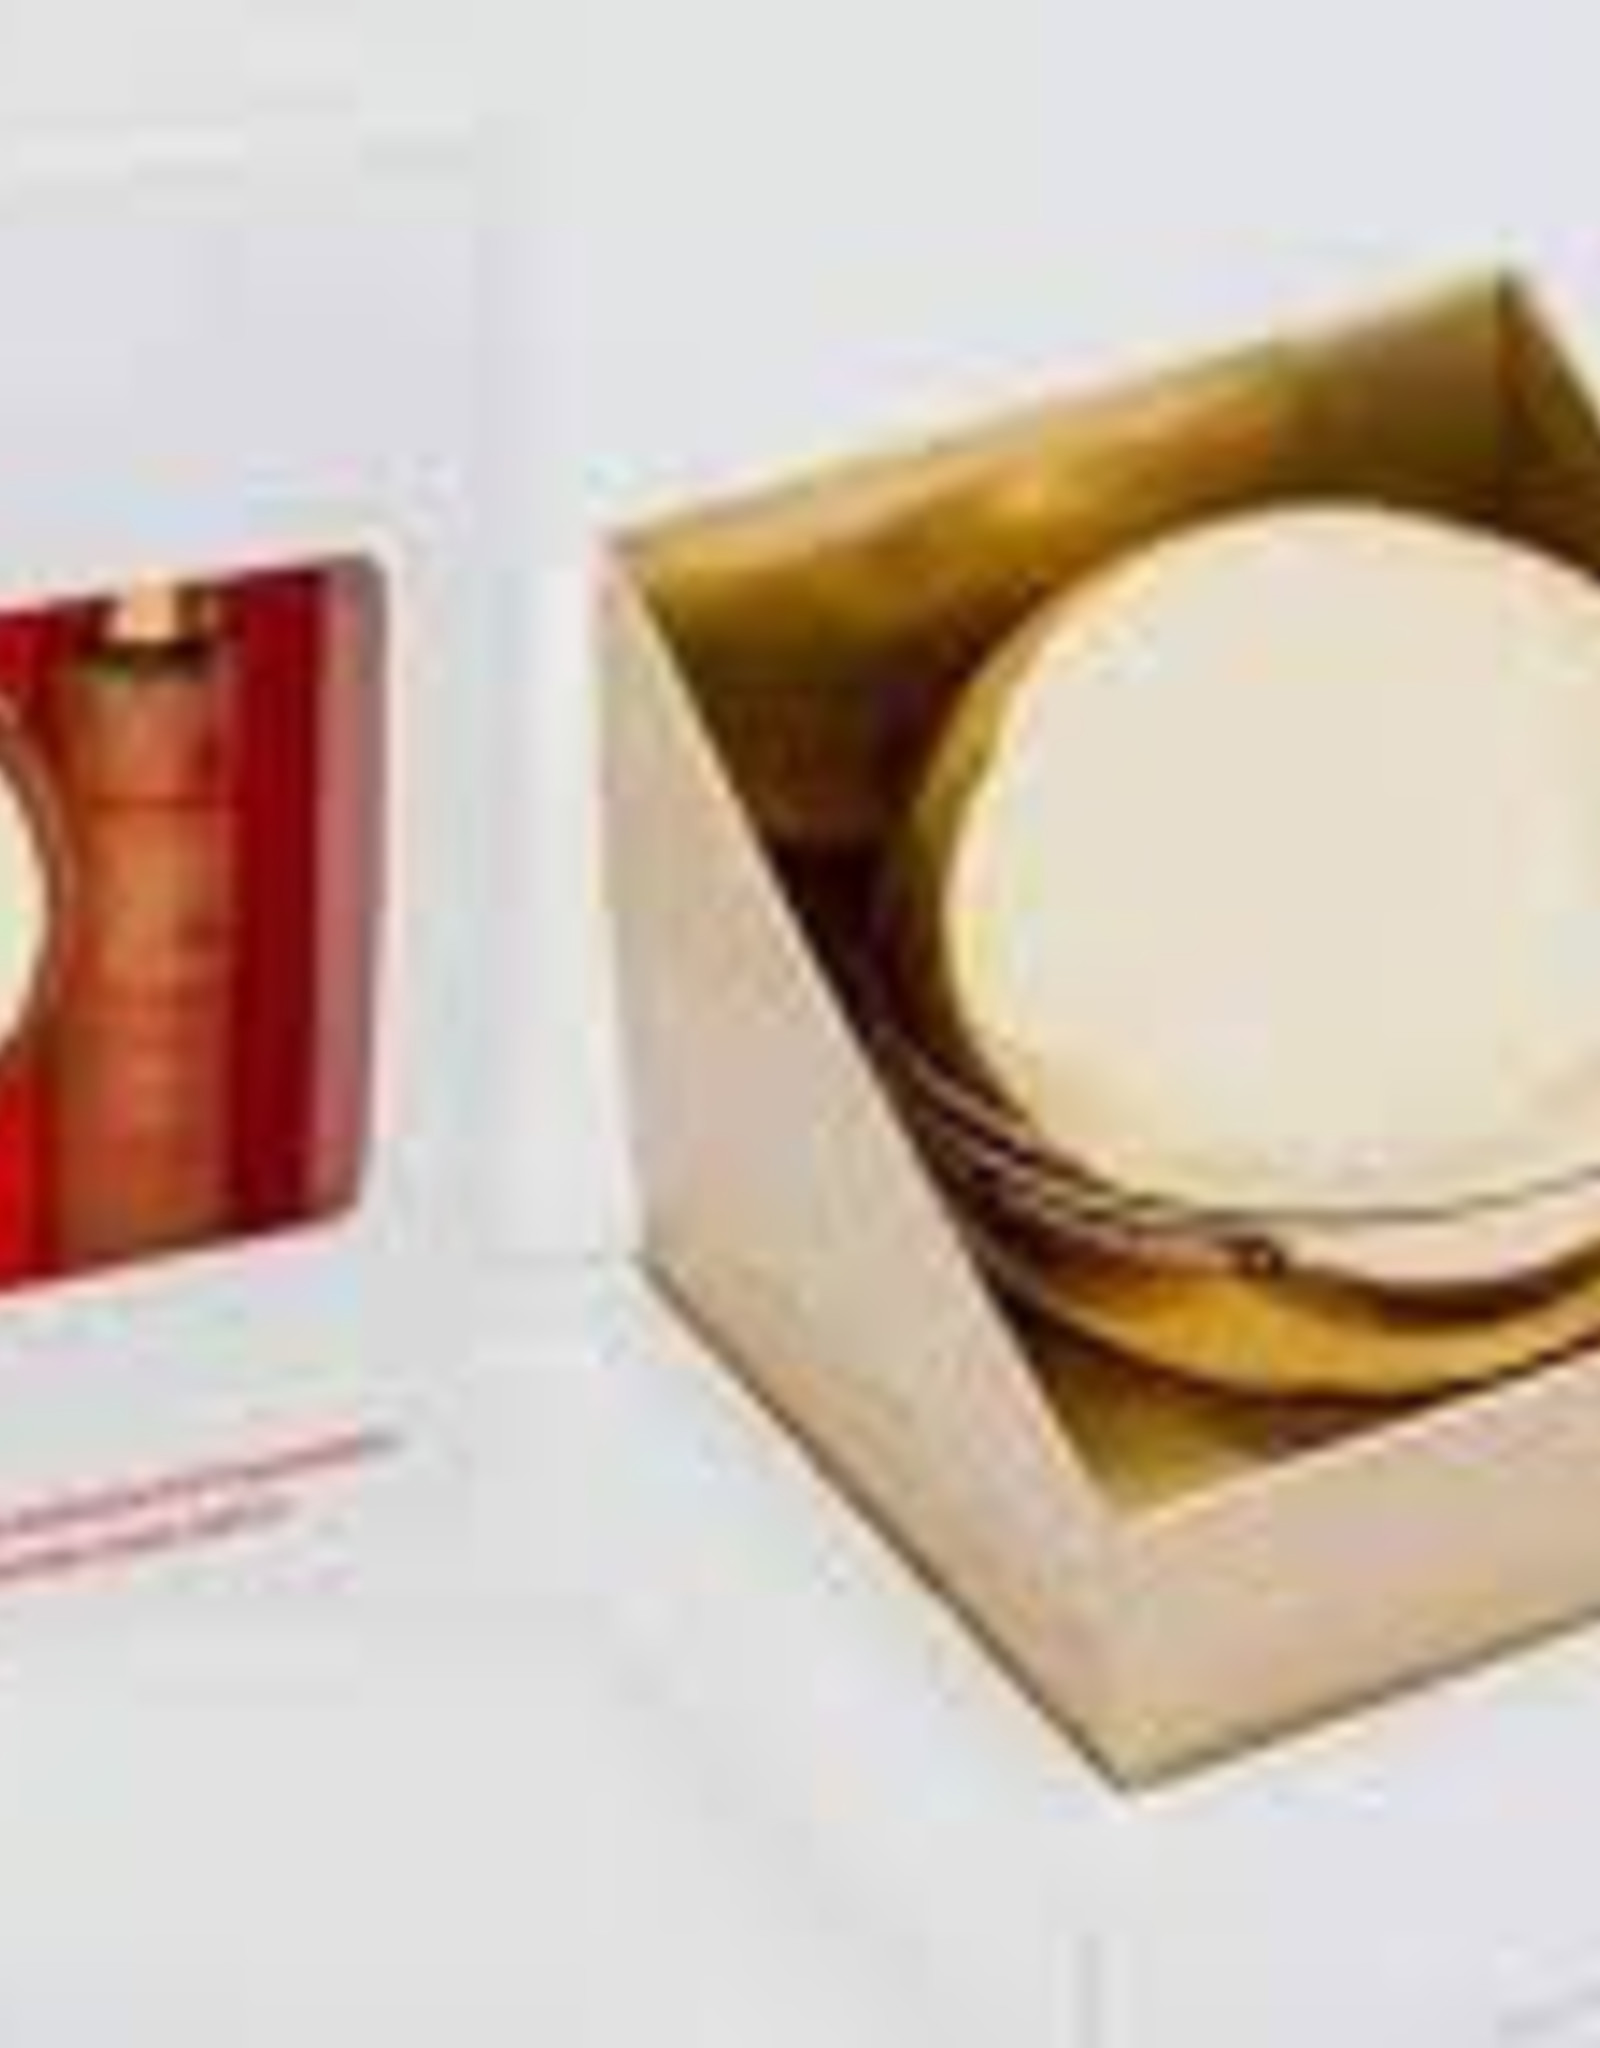 Utsukusy Dragon Blood home care kit